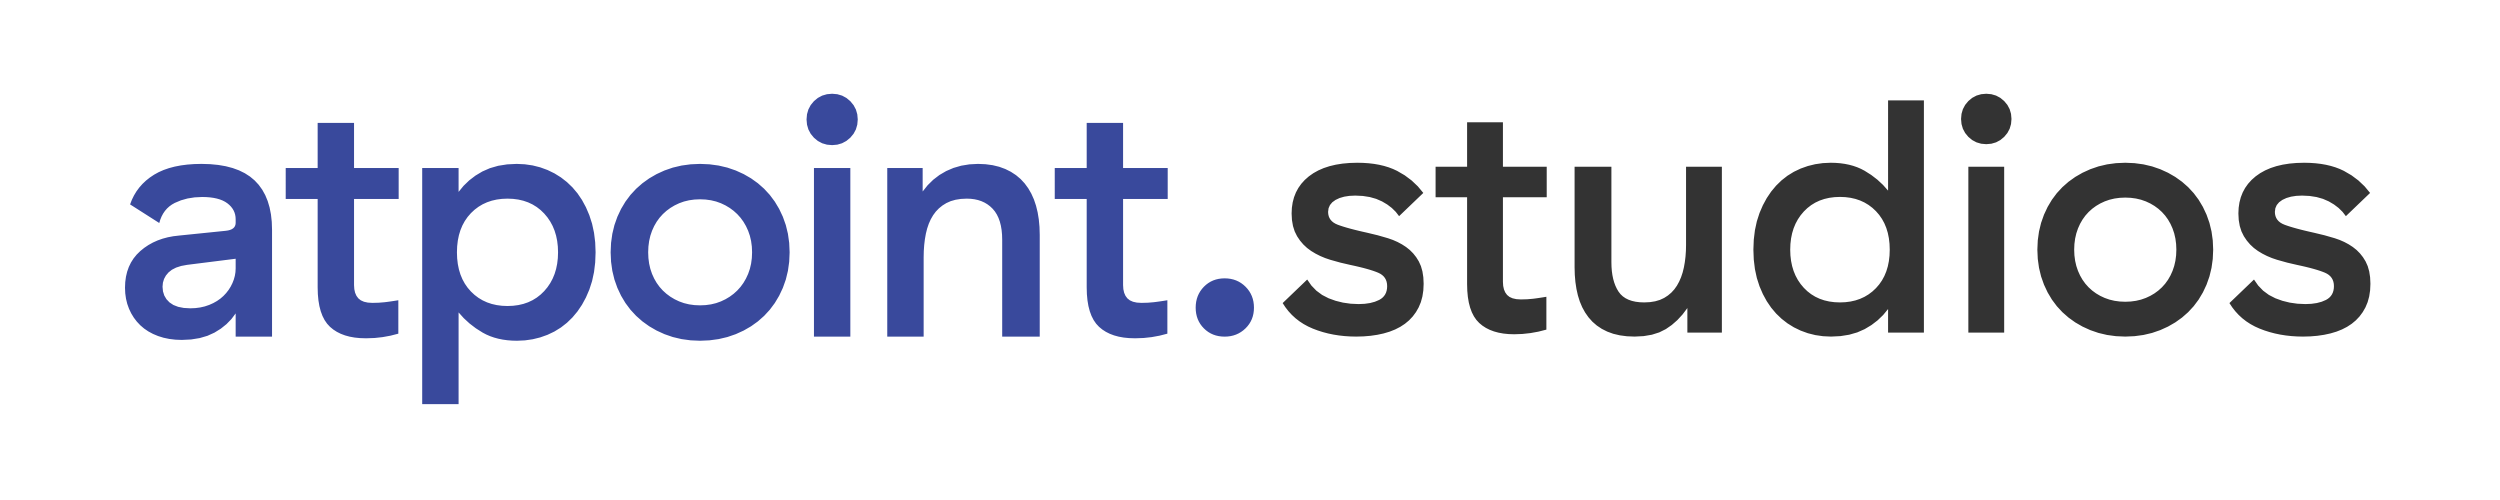 atpoint.studios (png)